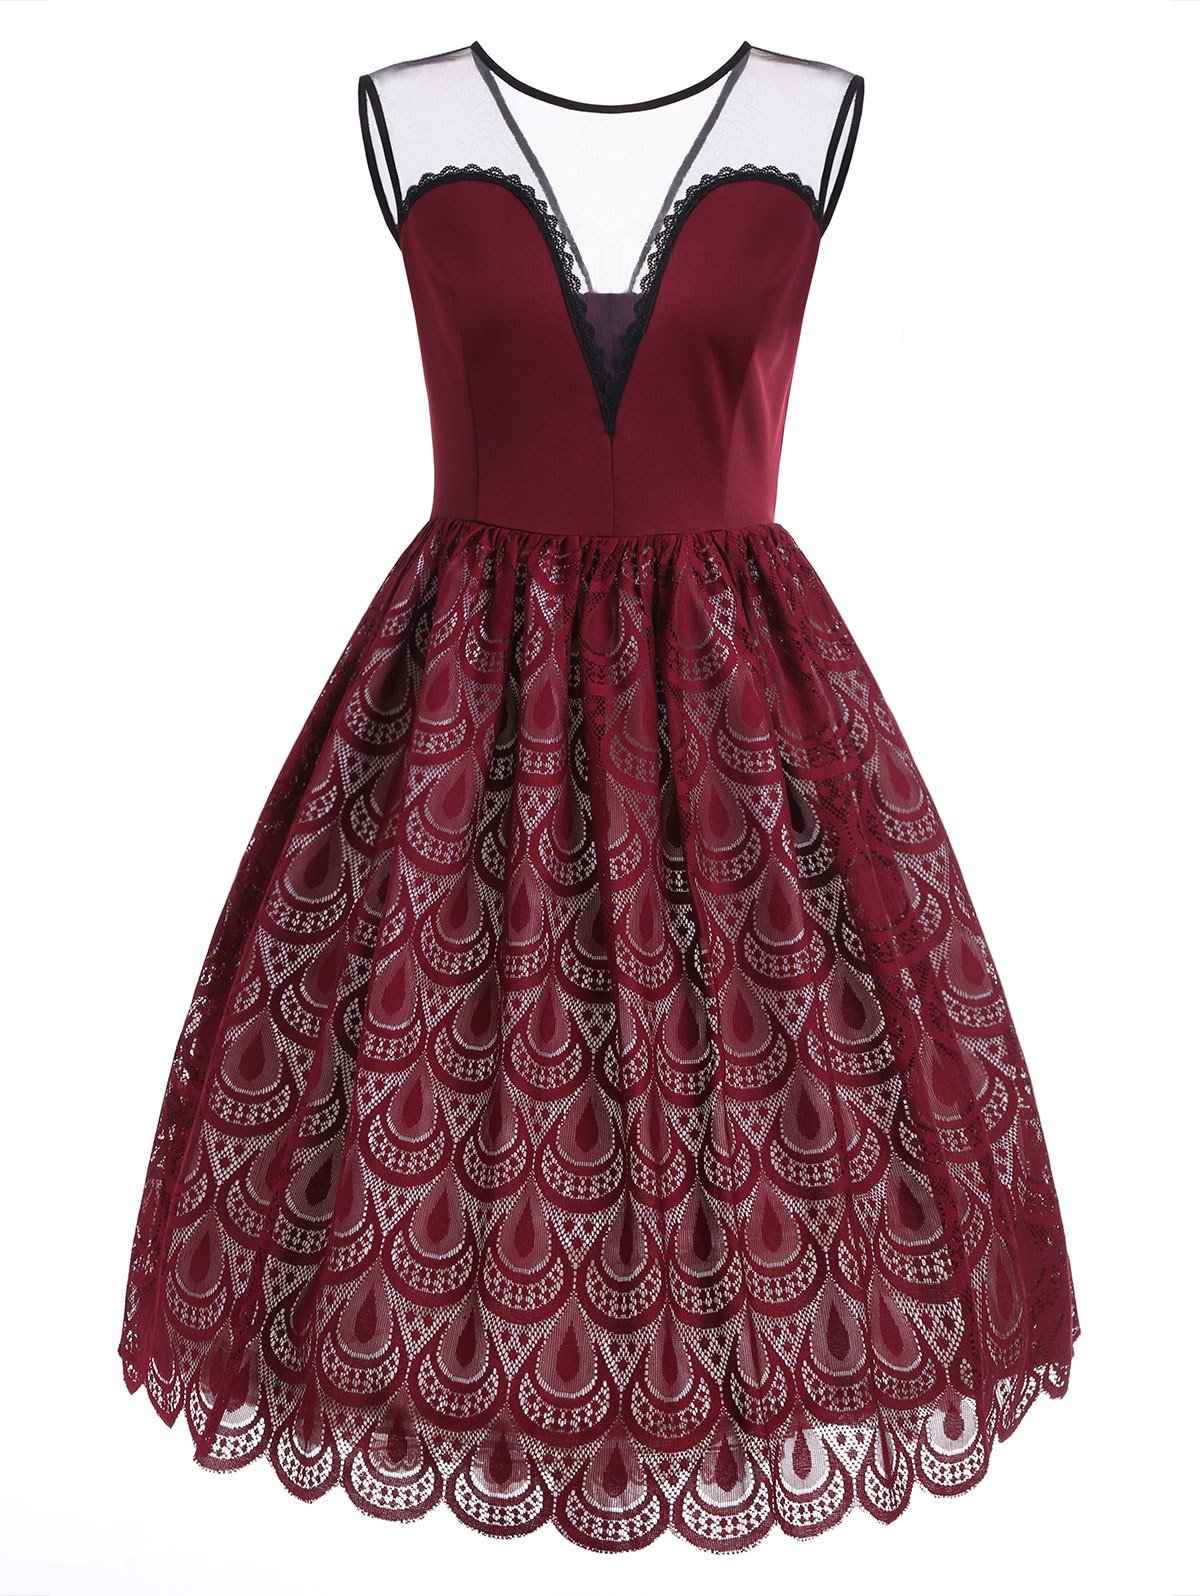 Lace Peacock Feathers A Line Dress - Red Wine - XL